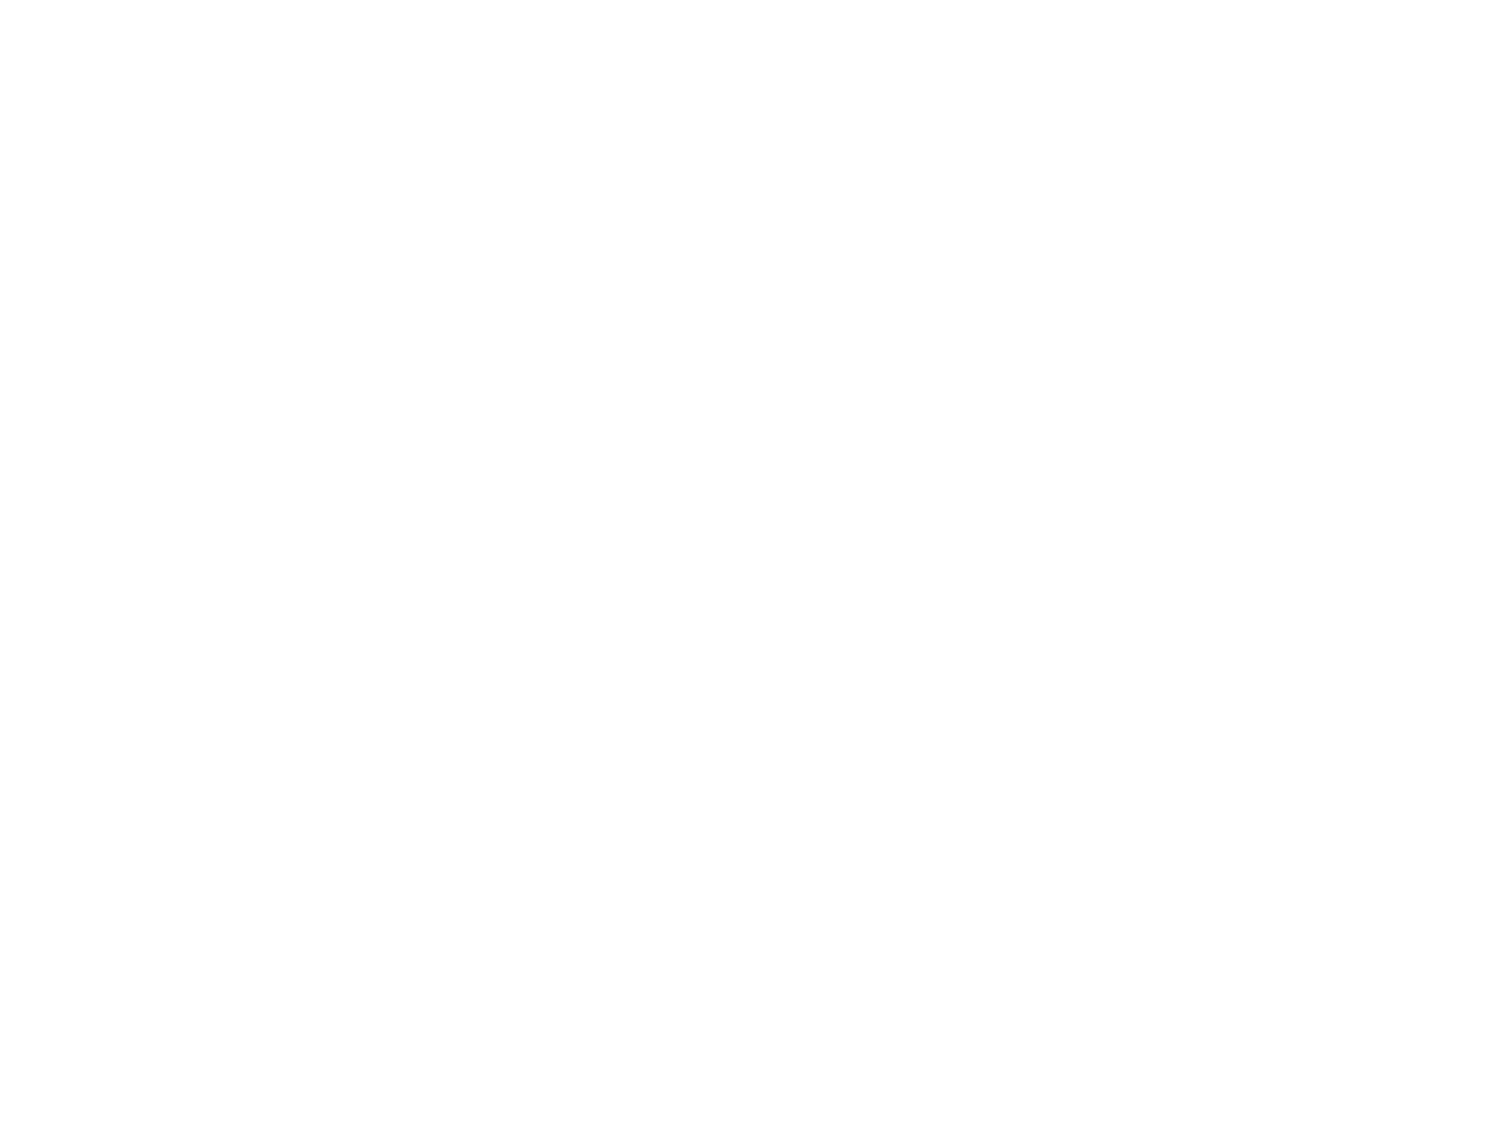 wellteq_white.png